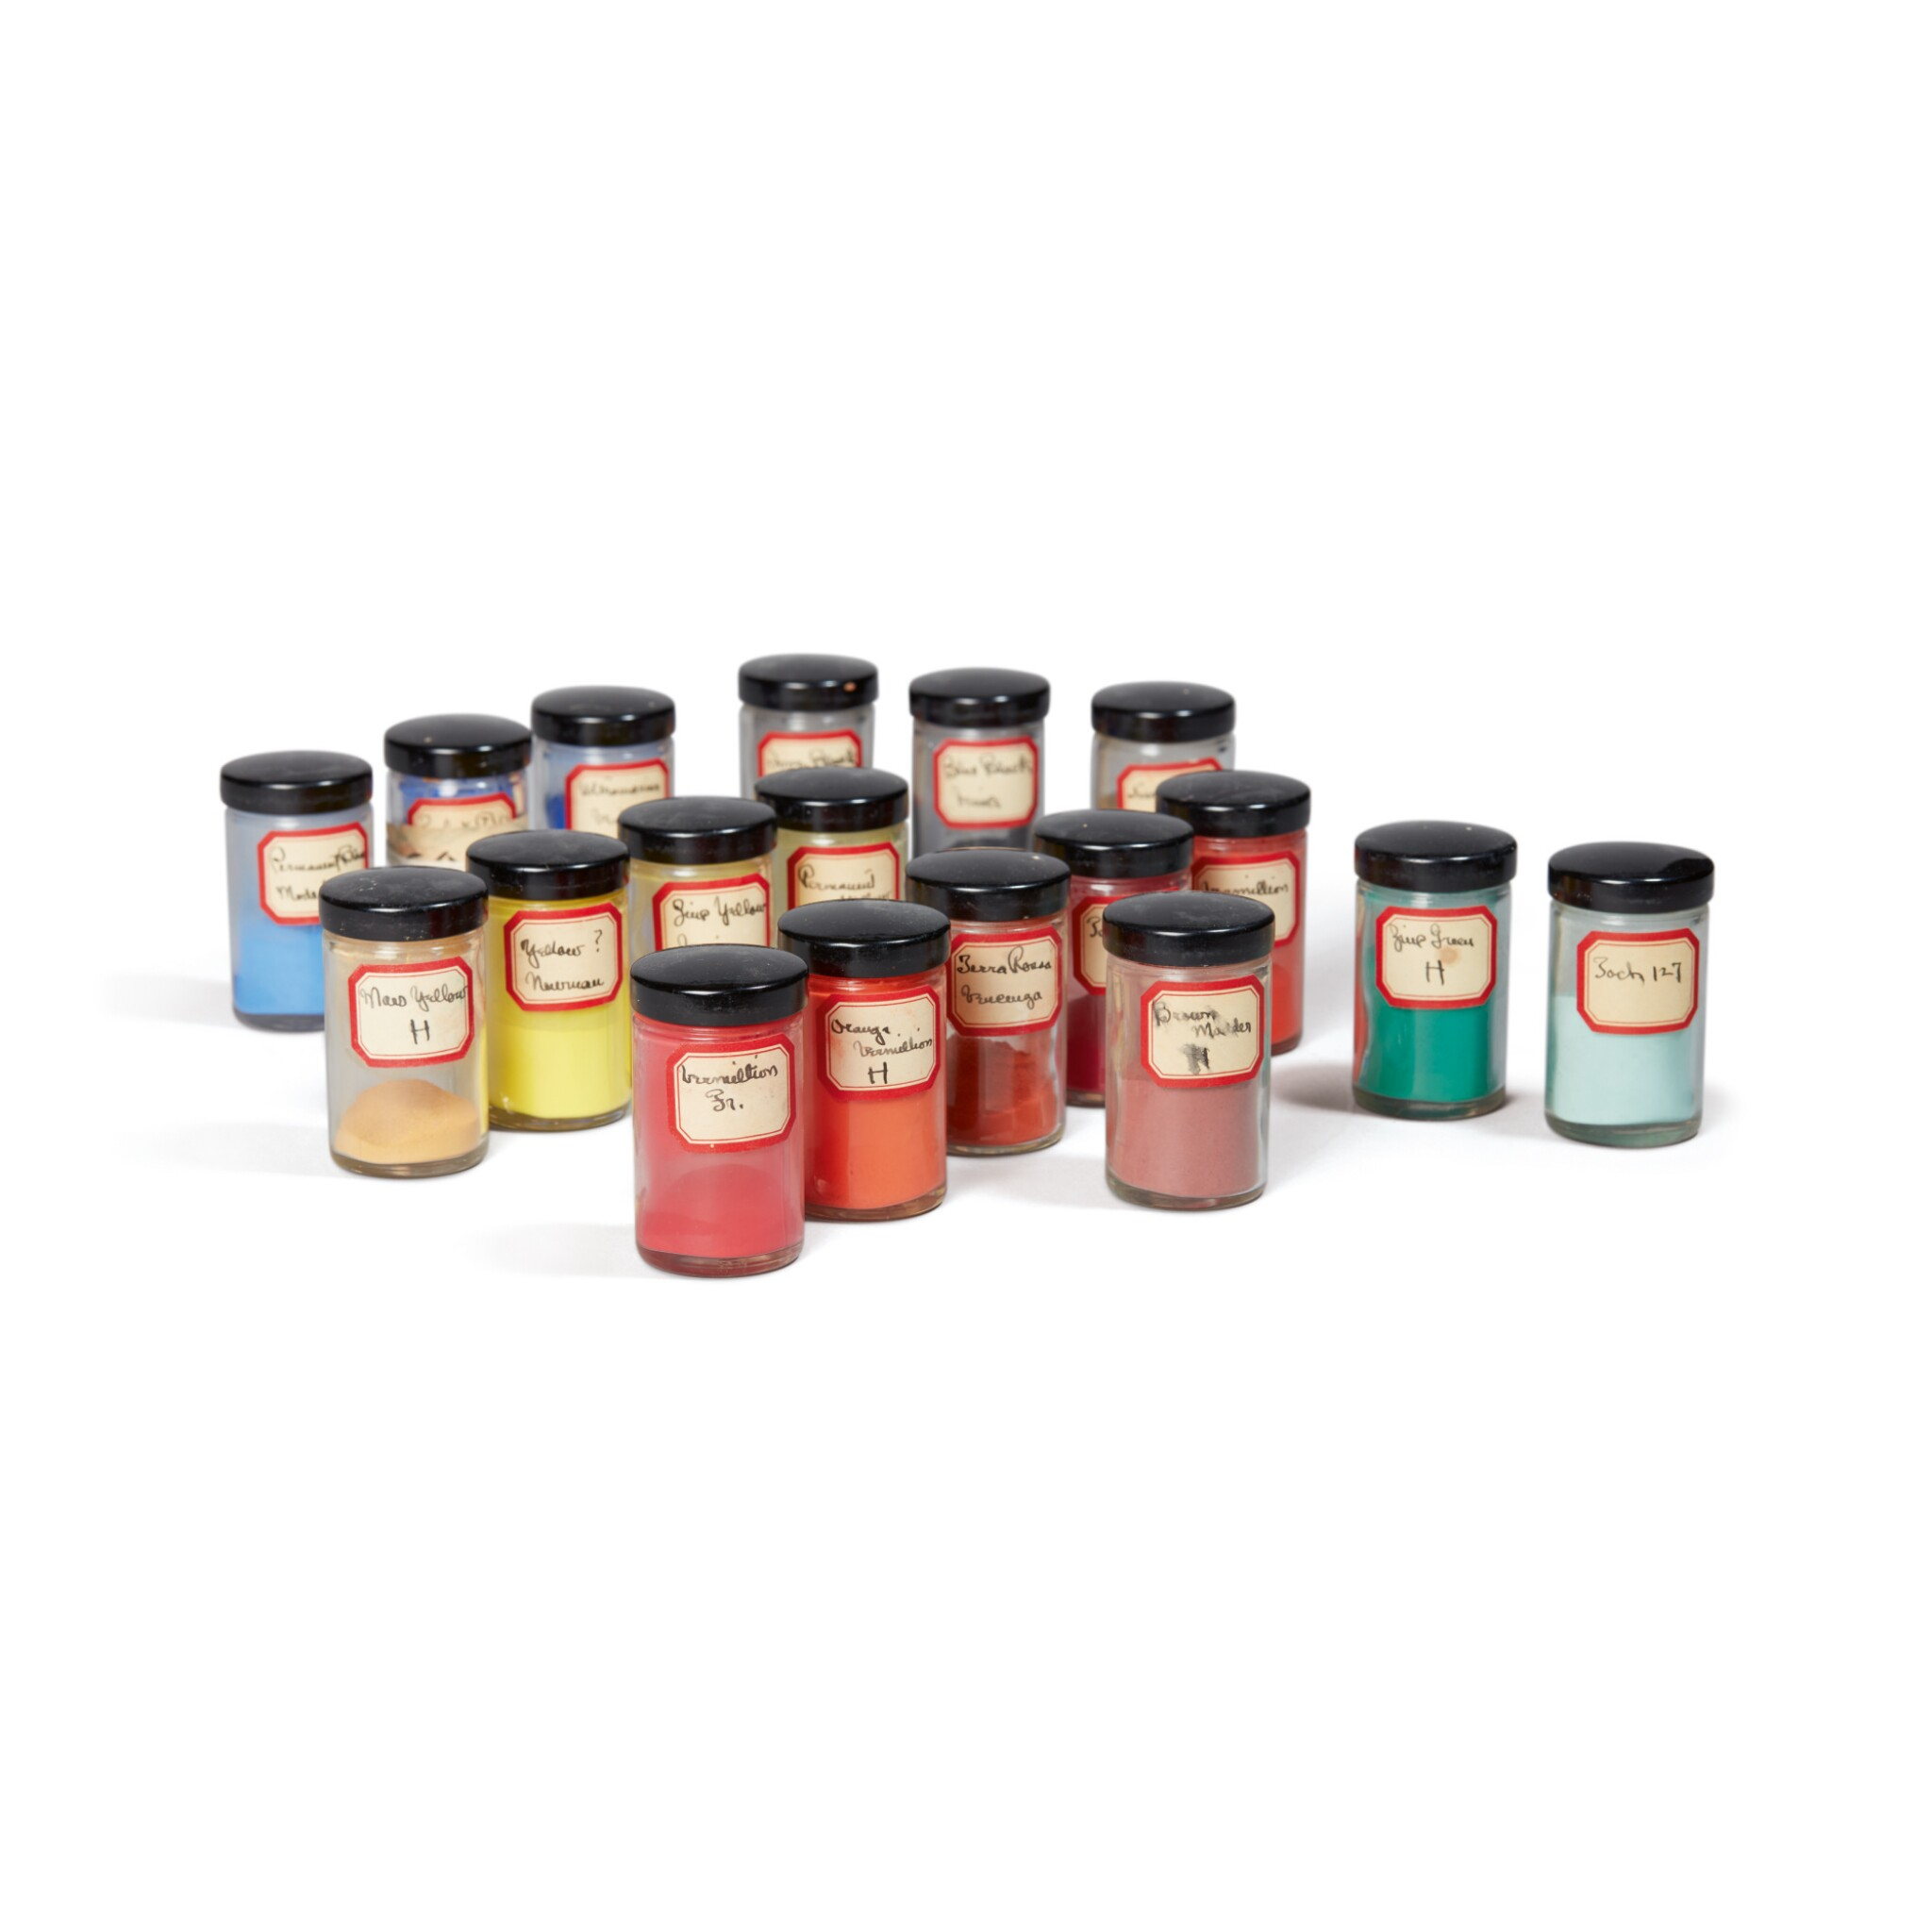 View 1 of Lot 73. GEORGIA O'KEEFFE'S PIGMENTS | A COLLECTION OF 18 JARS LABELLED AND USED BY GEORGIA O'KEEFFE.